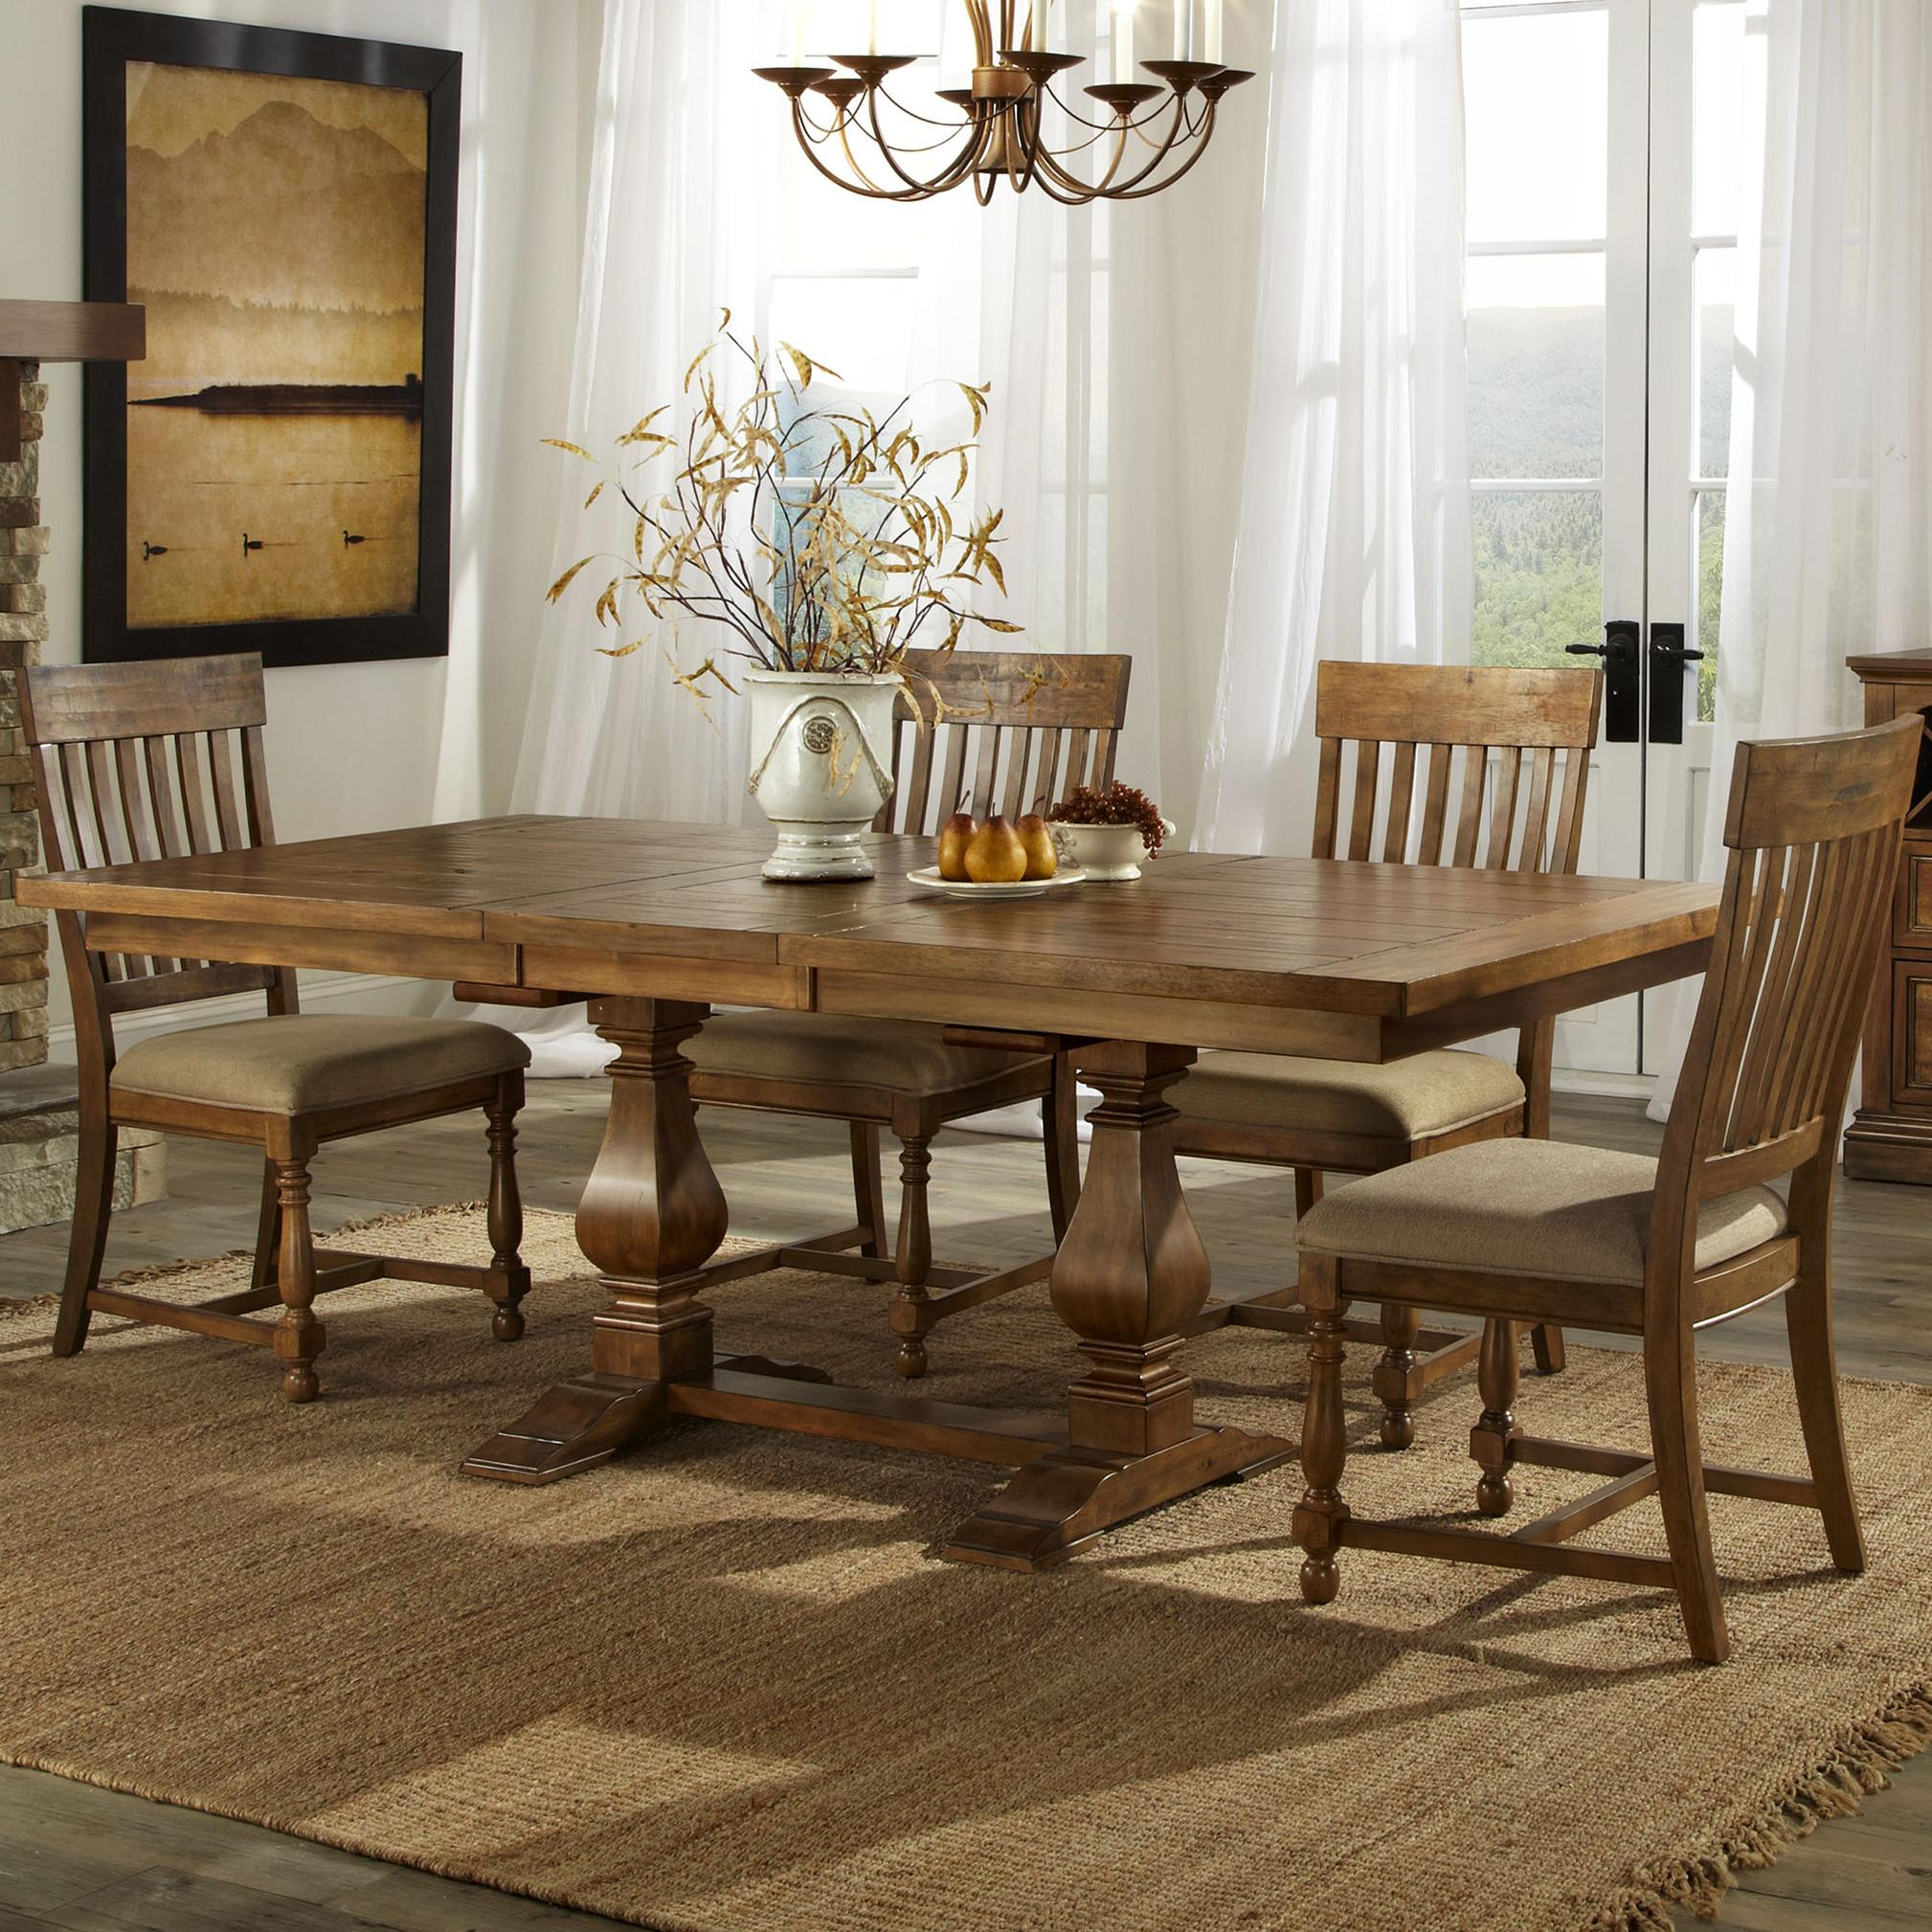 Belfort Select Loudoun Crossing Dining Table and Chair Set - Item Number: R-T-44-BL-BE+B-TP+4xR-CH-50C-BL-RA